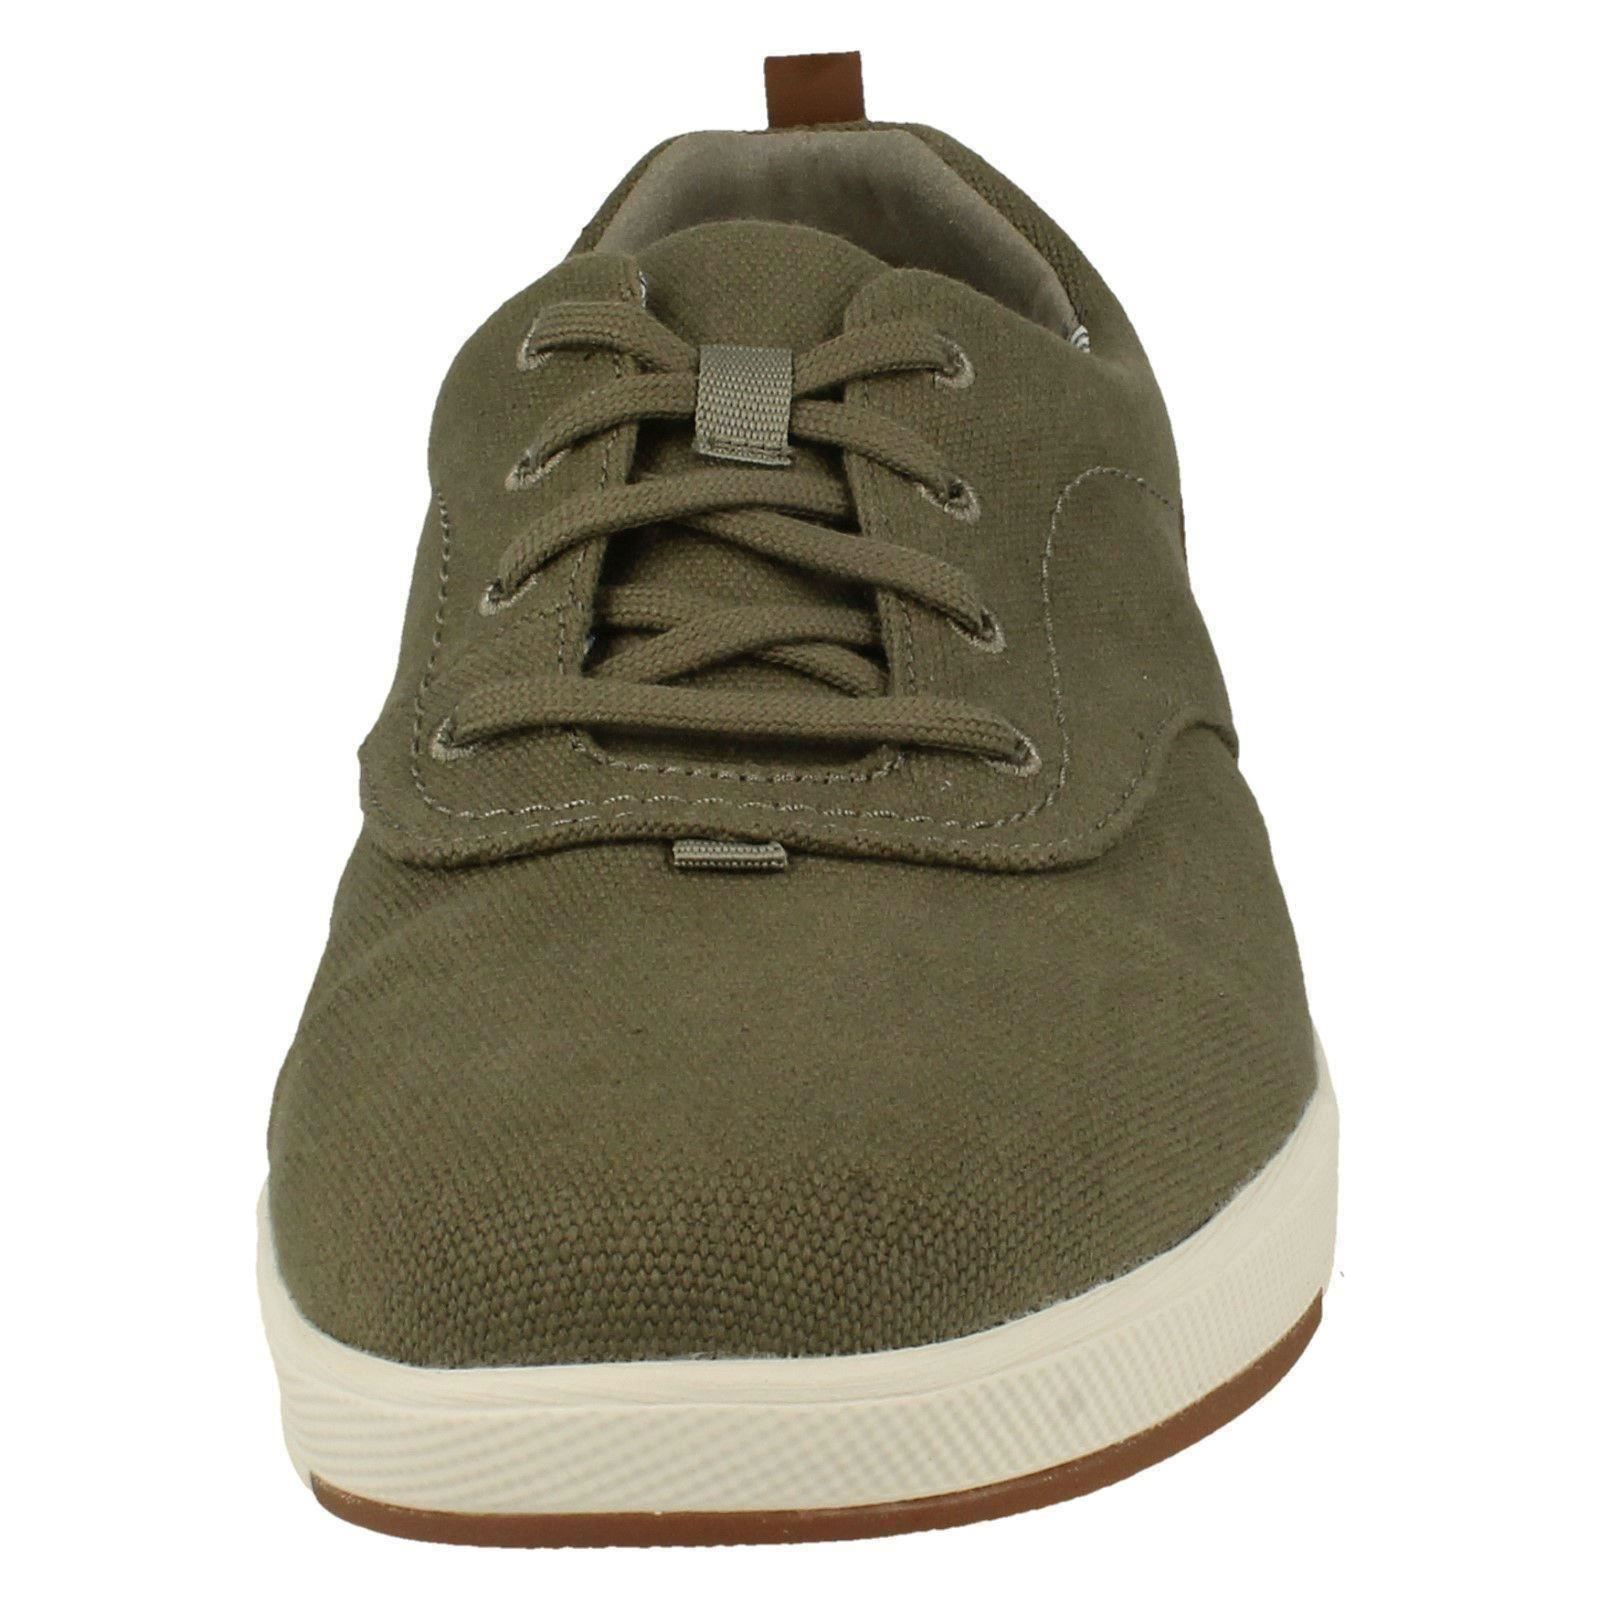 Clarks Mens Stylish Lace Up Trainers Step Isle Crew